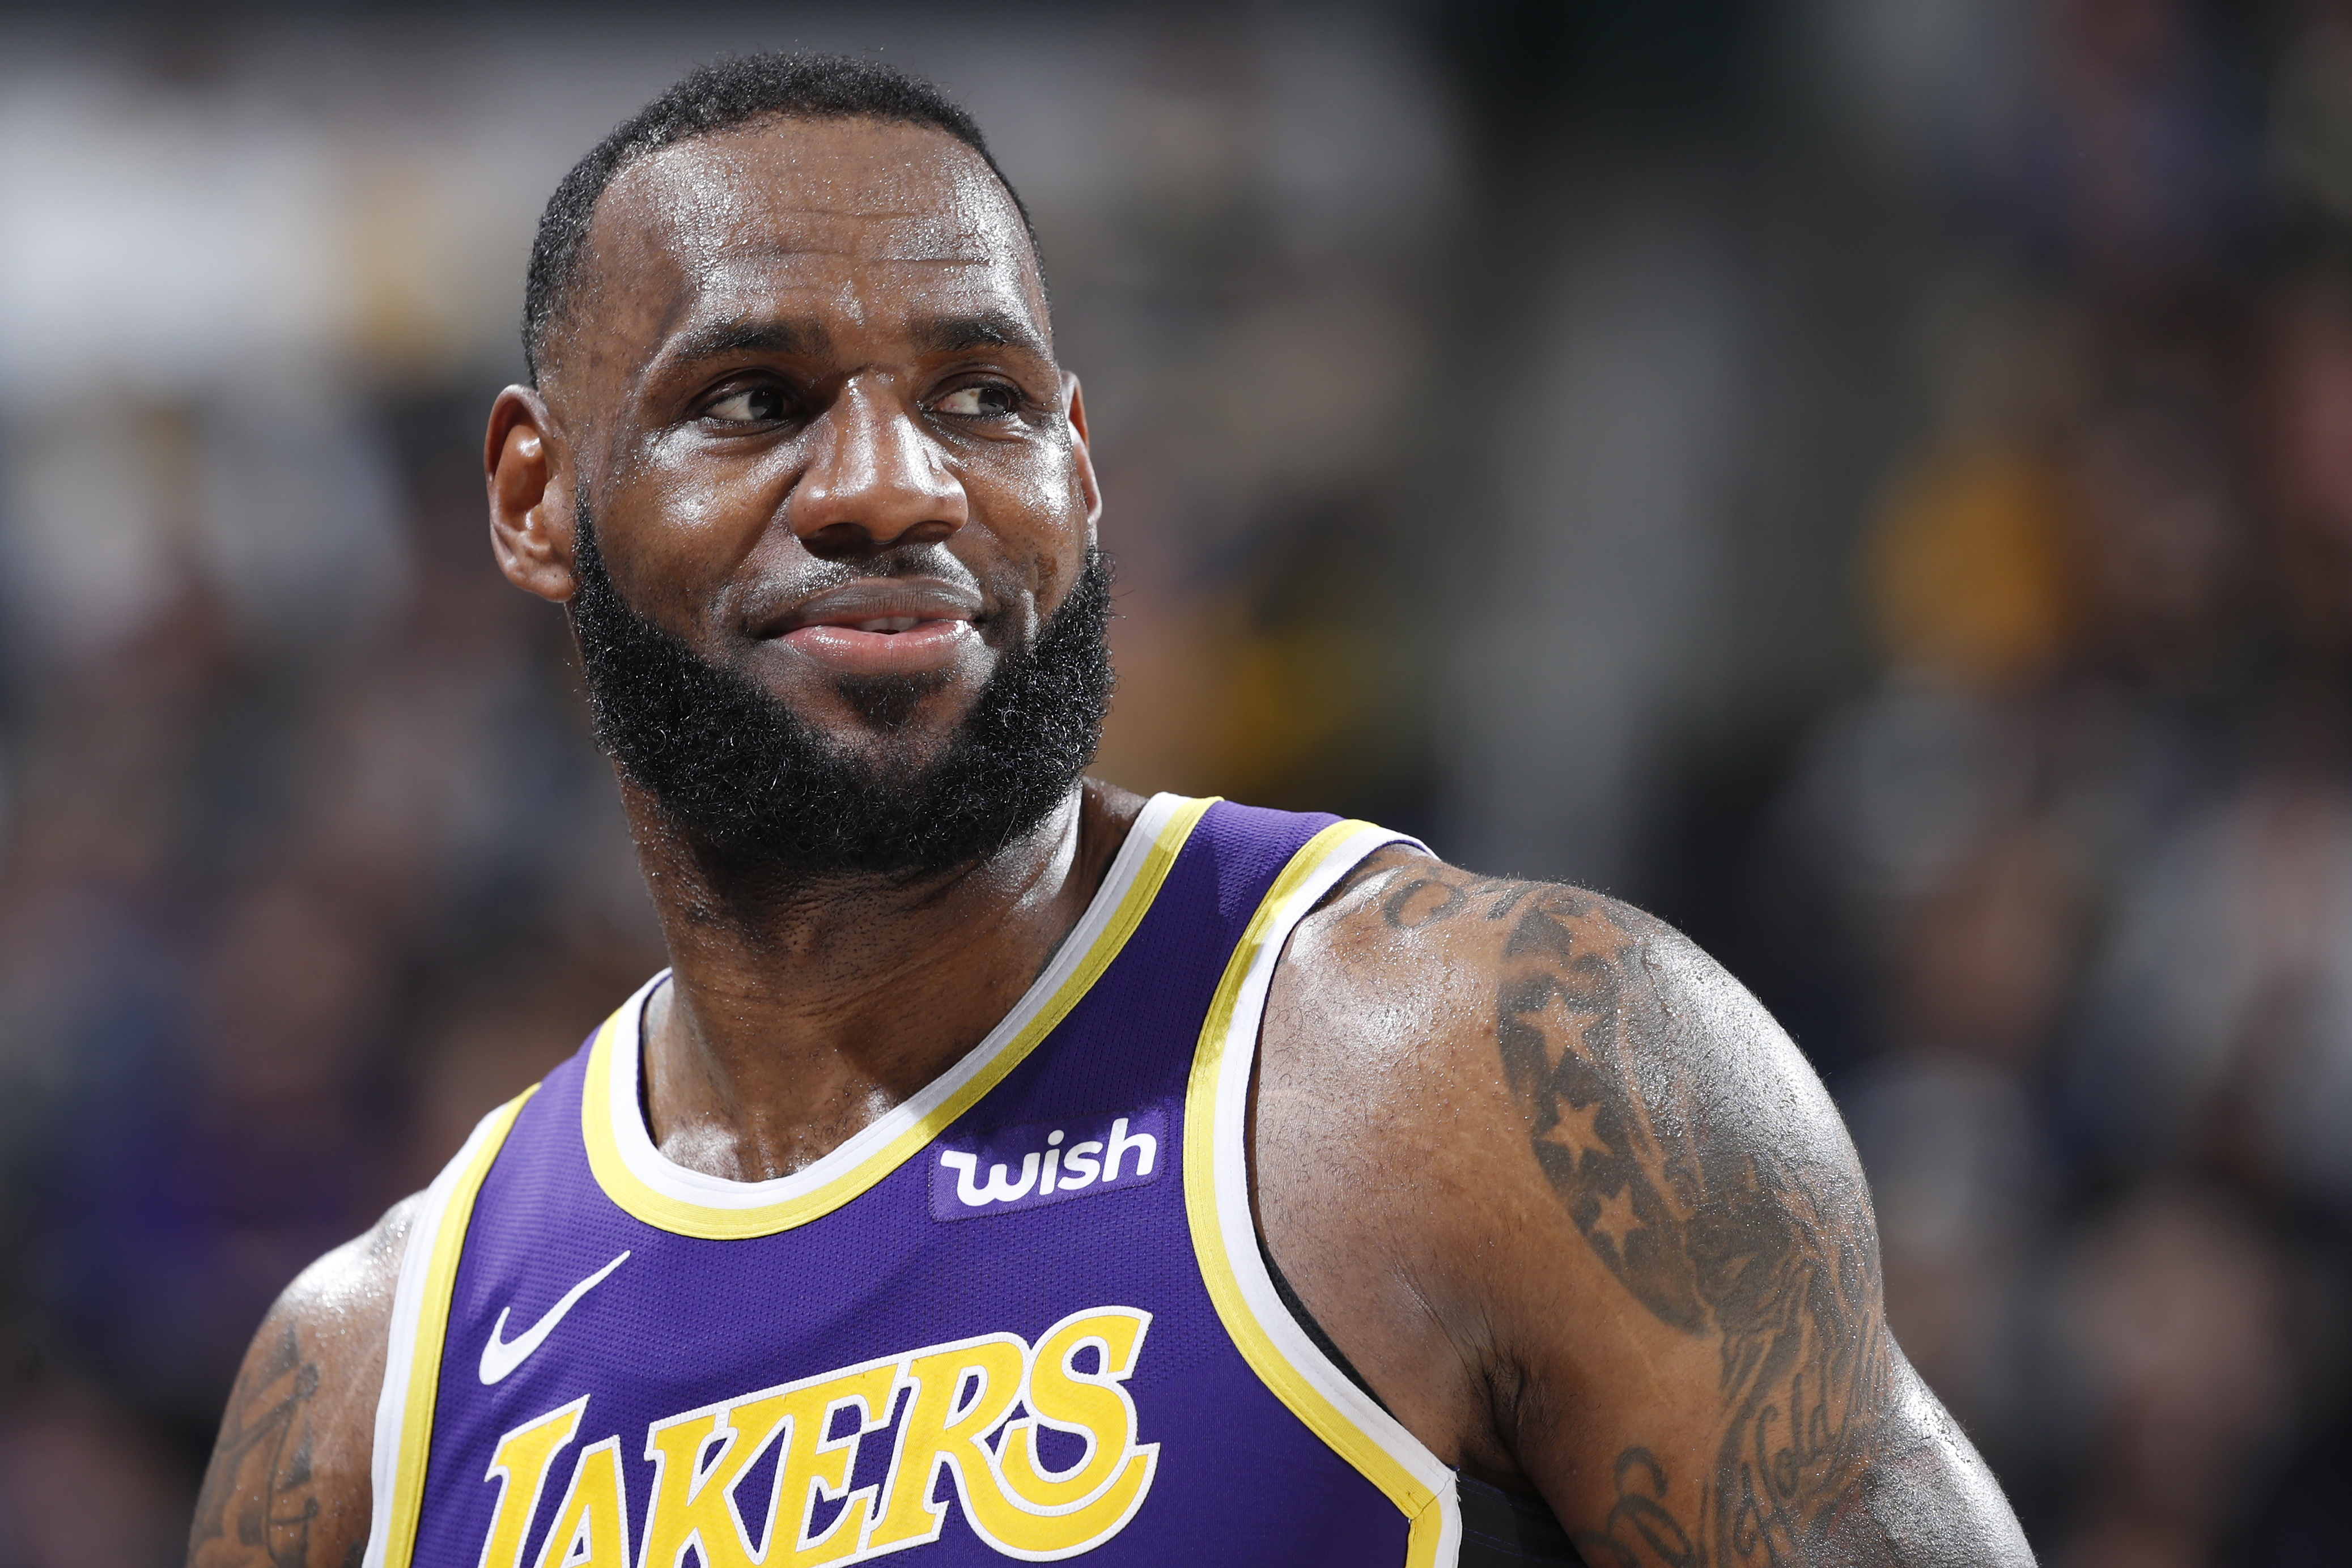 In a purple Lakers jersey with gold lettering, LeBron James sweats and smiles on the court with fans blurred in the background.